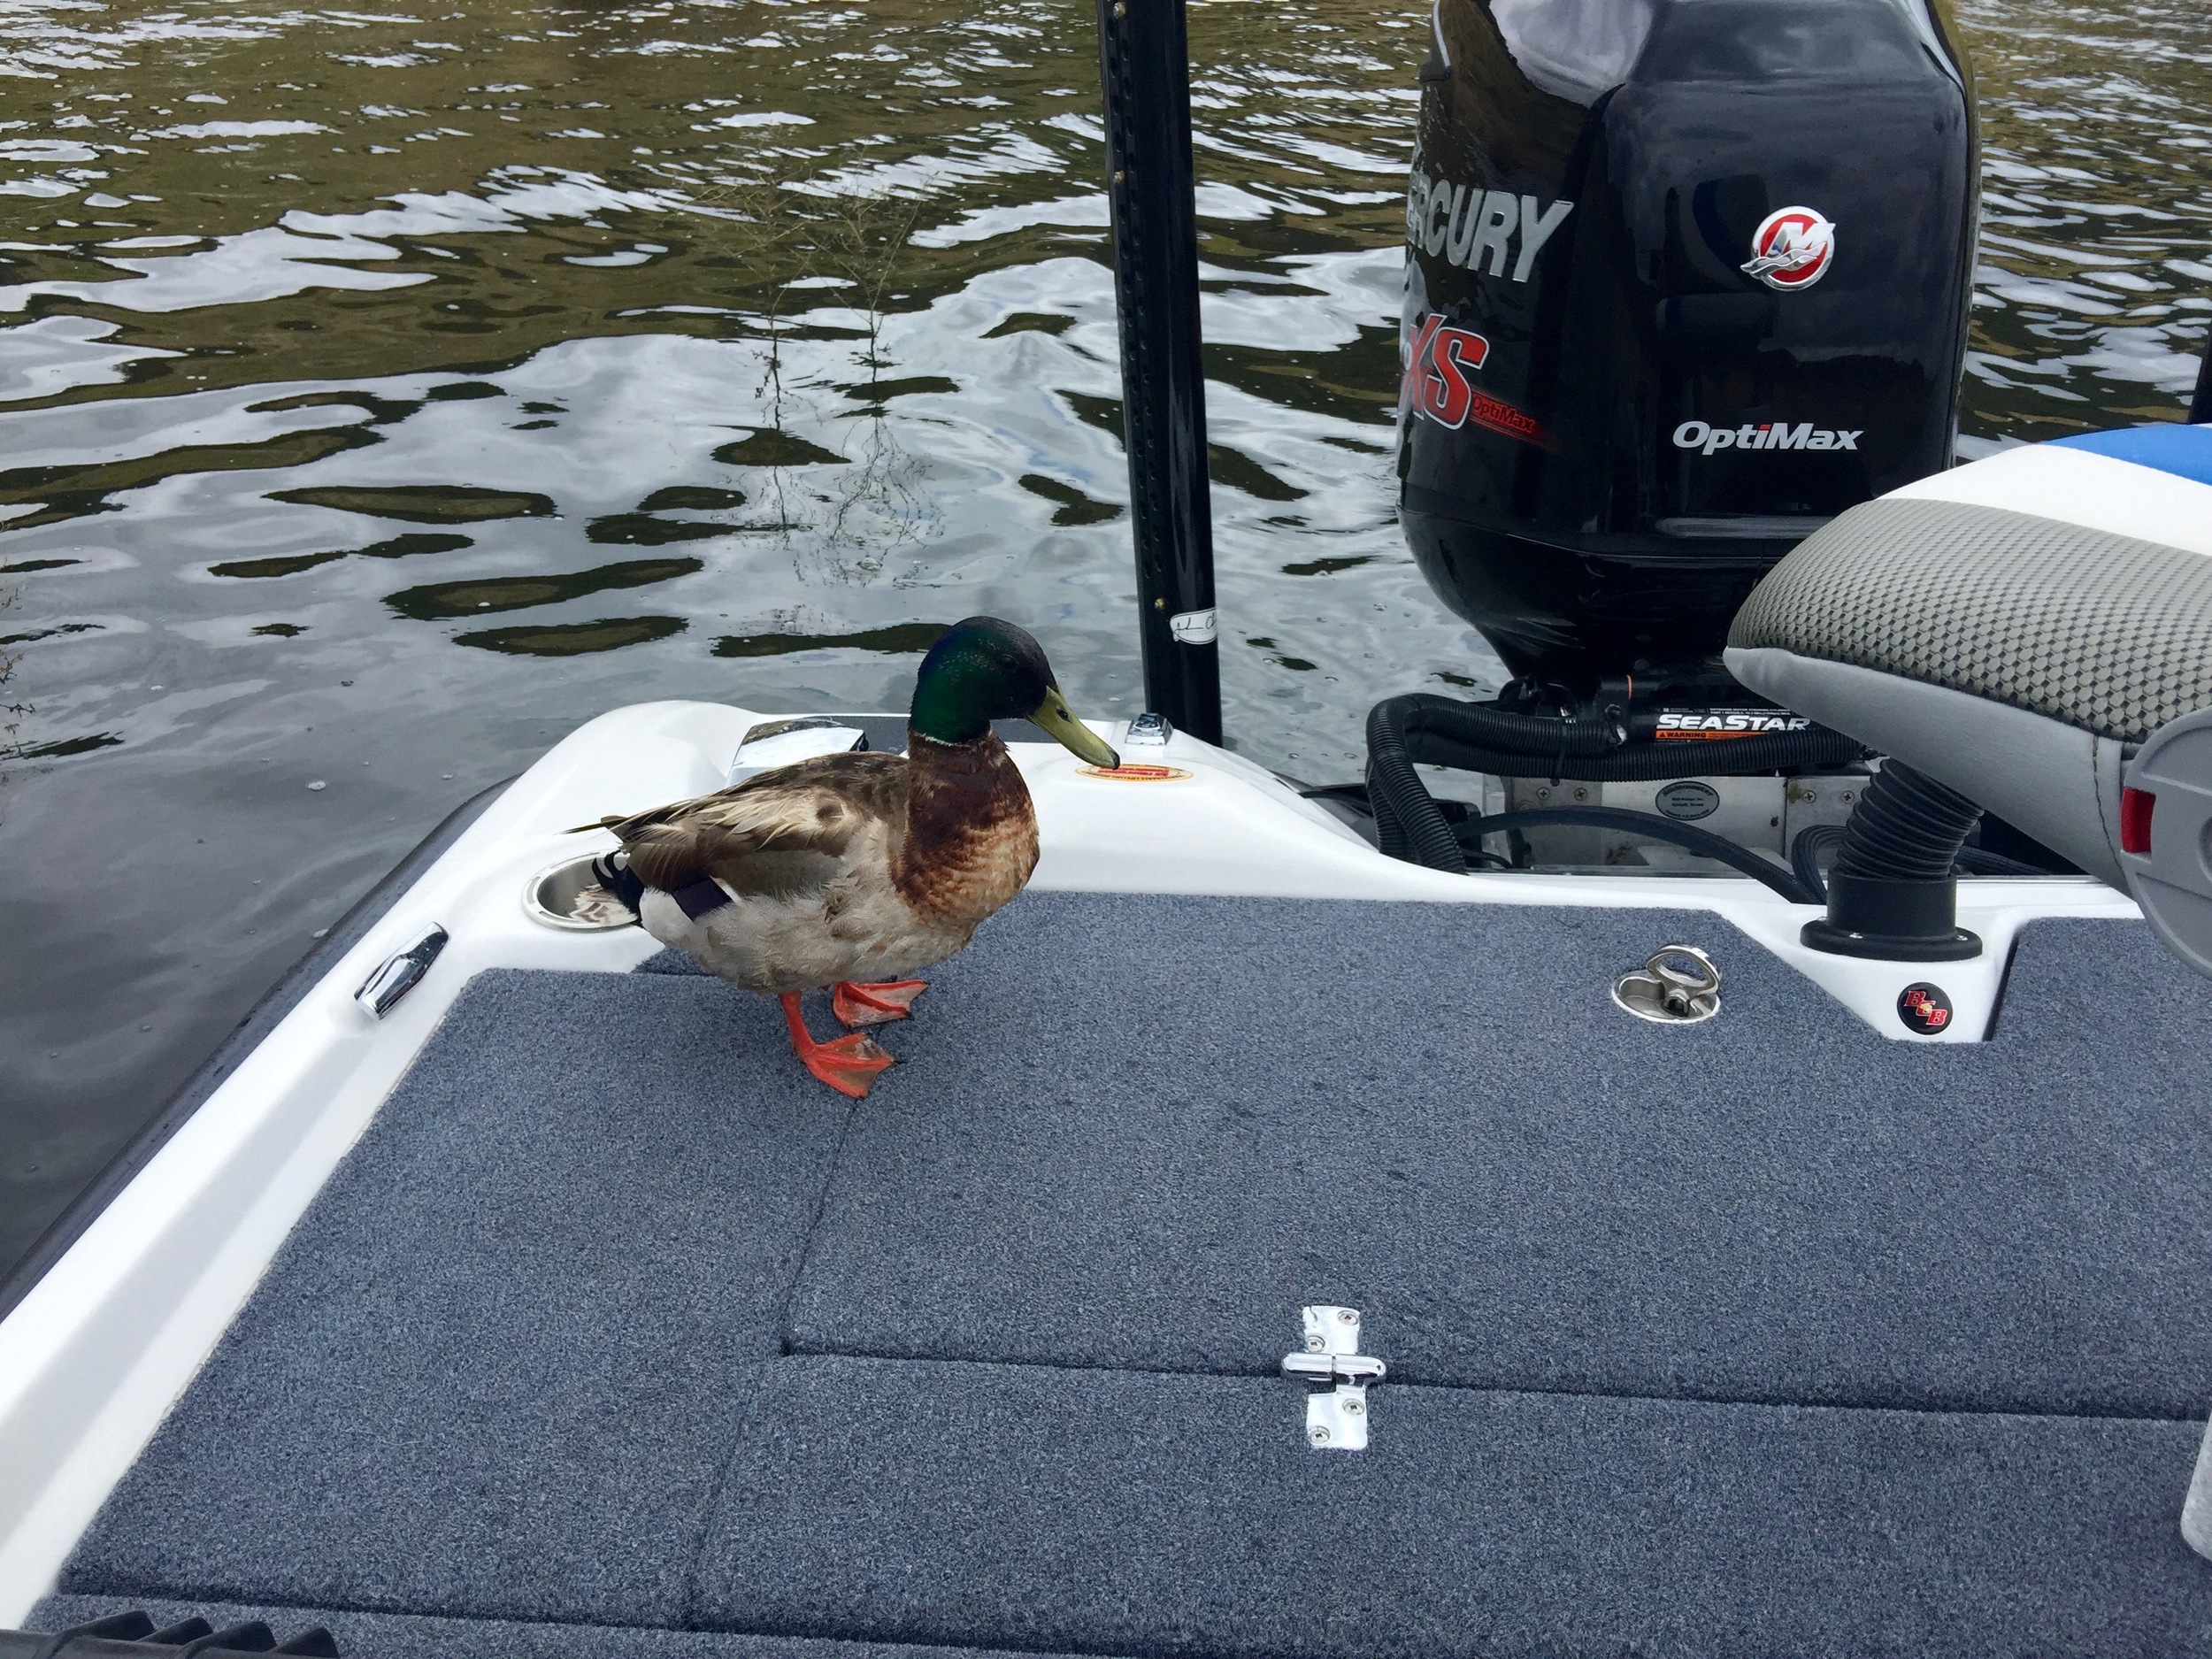 Milferd The Mallard Needed A Little Break And Wanted To Check Out The New BassCat Caracal!